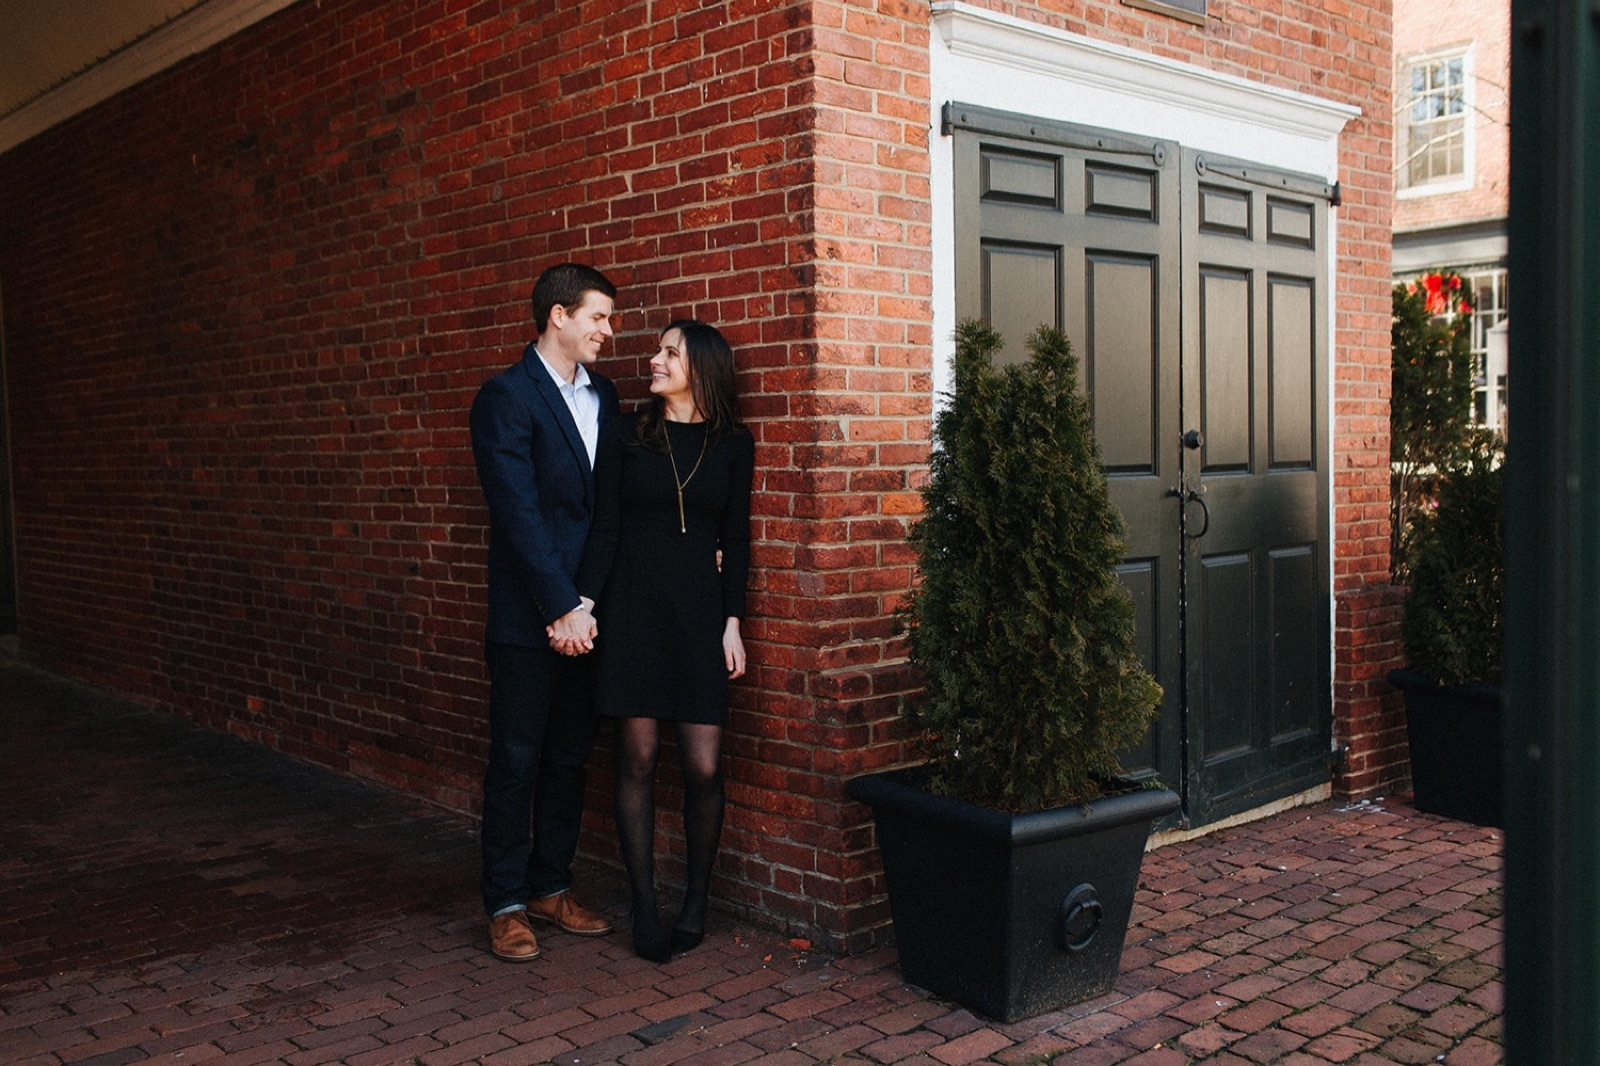 09_Headhouse_photography_engagement_philadelphia.jpg